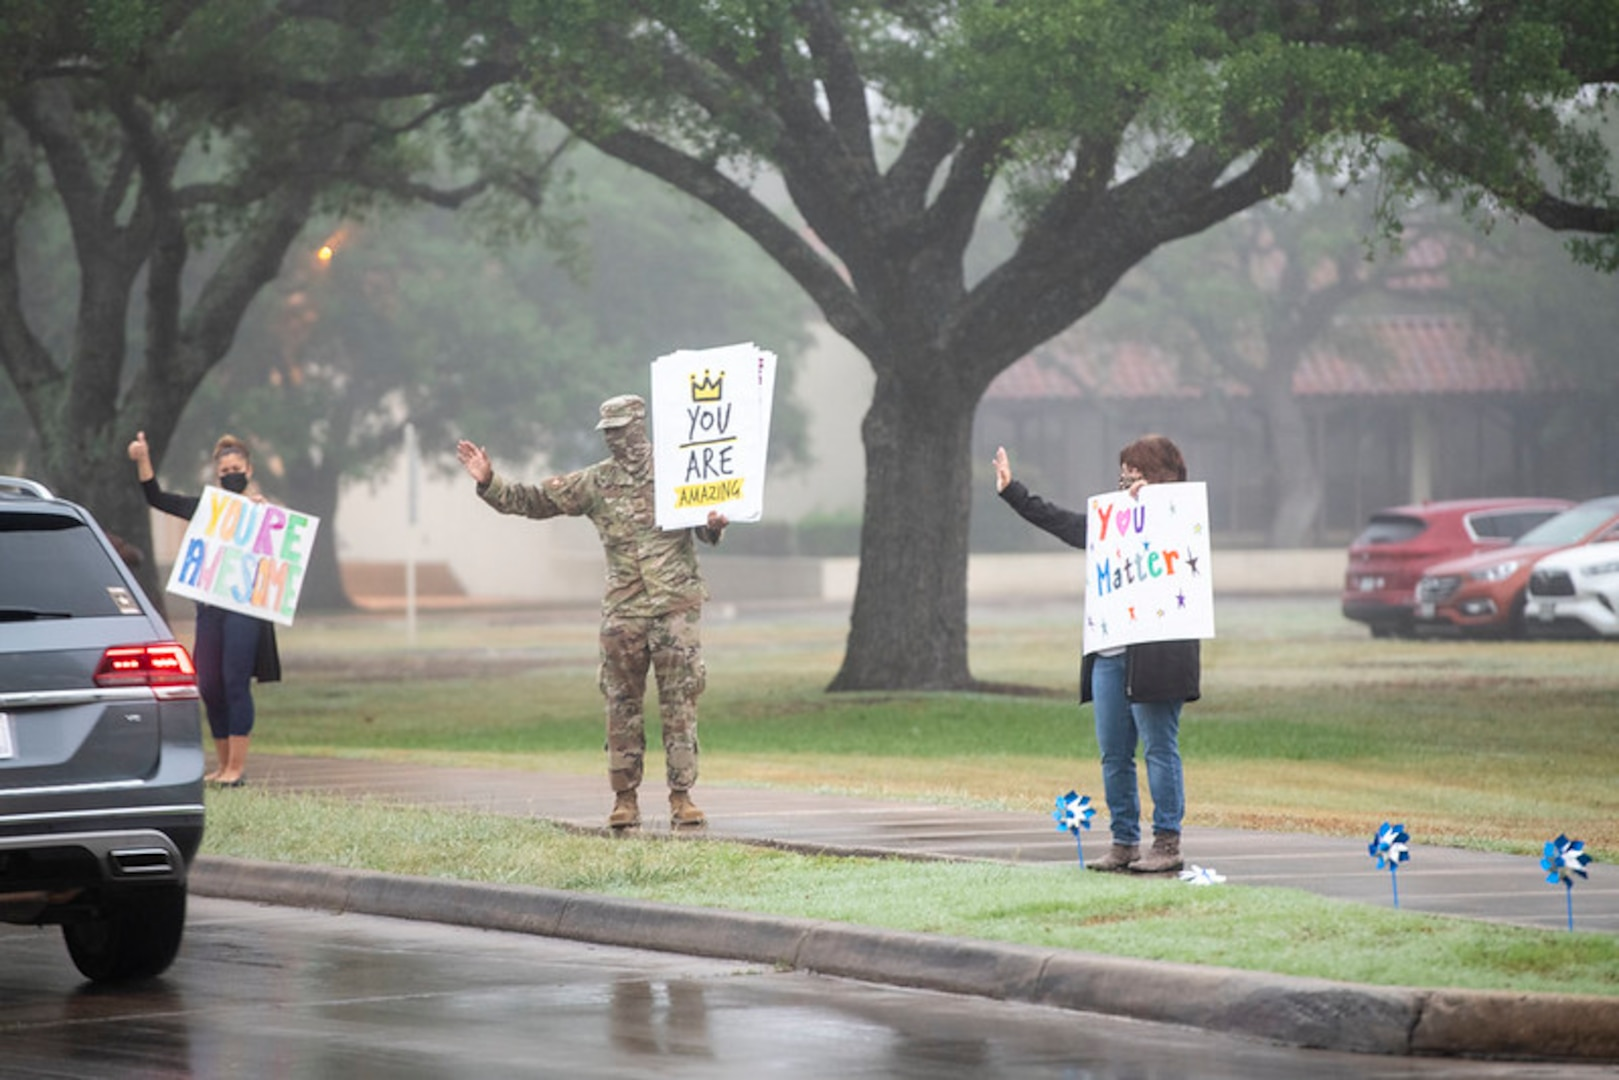 Volunteers hold signs in support of the We Care Day event April. 16, 2021, at Joint Base San Antonio-Randolph, Texas. The event was in support of Month of the Military Child and Child Abuse awareness month.